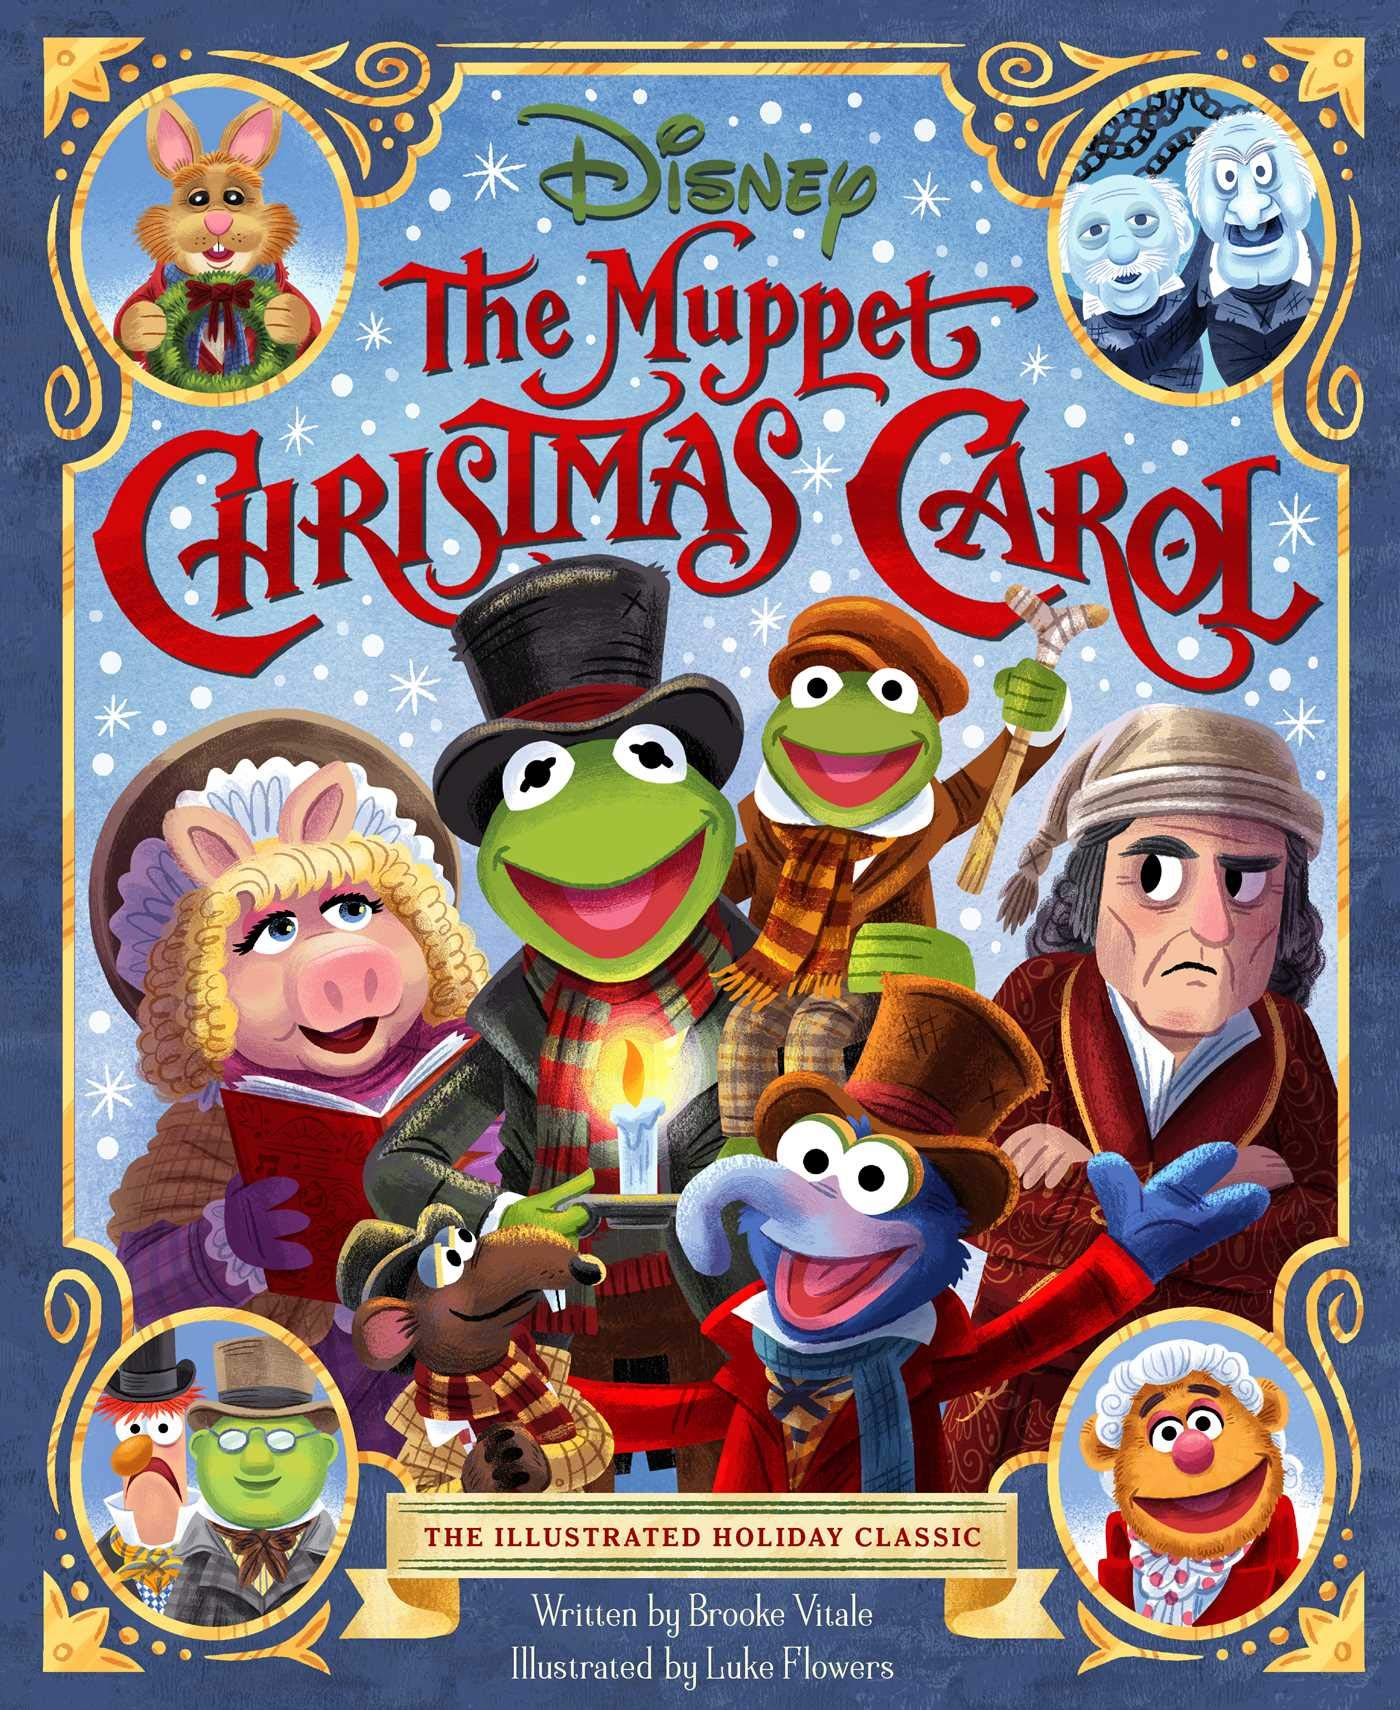 The Muppet Christmas Carol Trailer.The Muppet Christmas Carol The Illustrated Holiday Classic